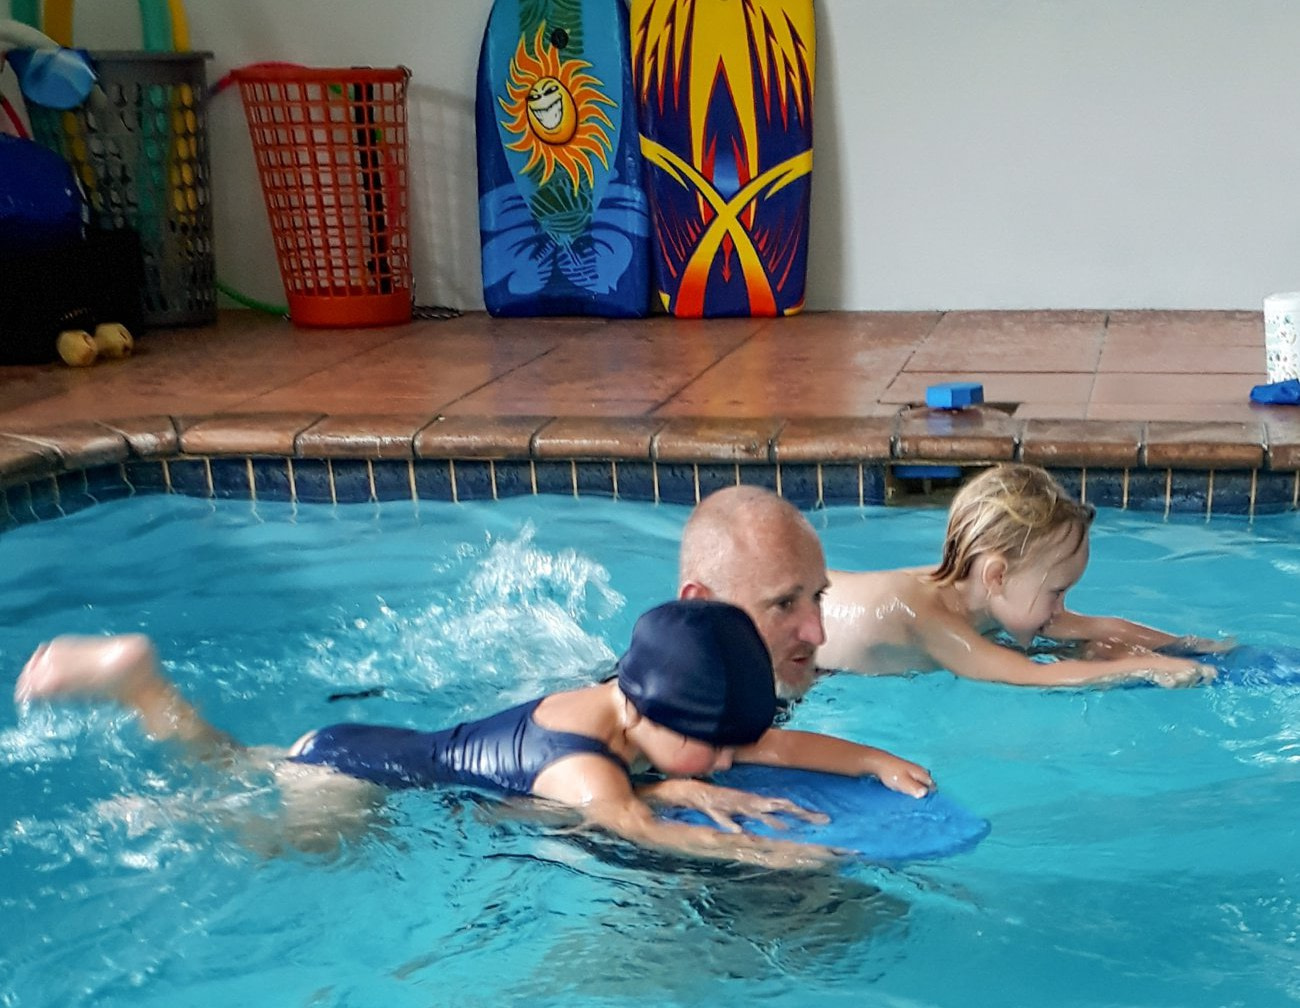 Edward in the pool with two student using kick boards